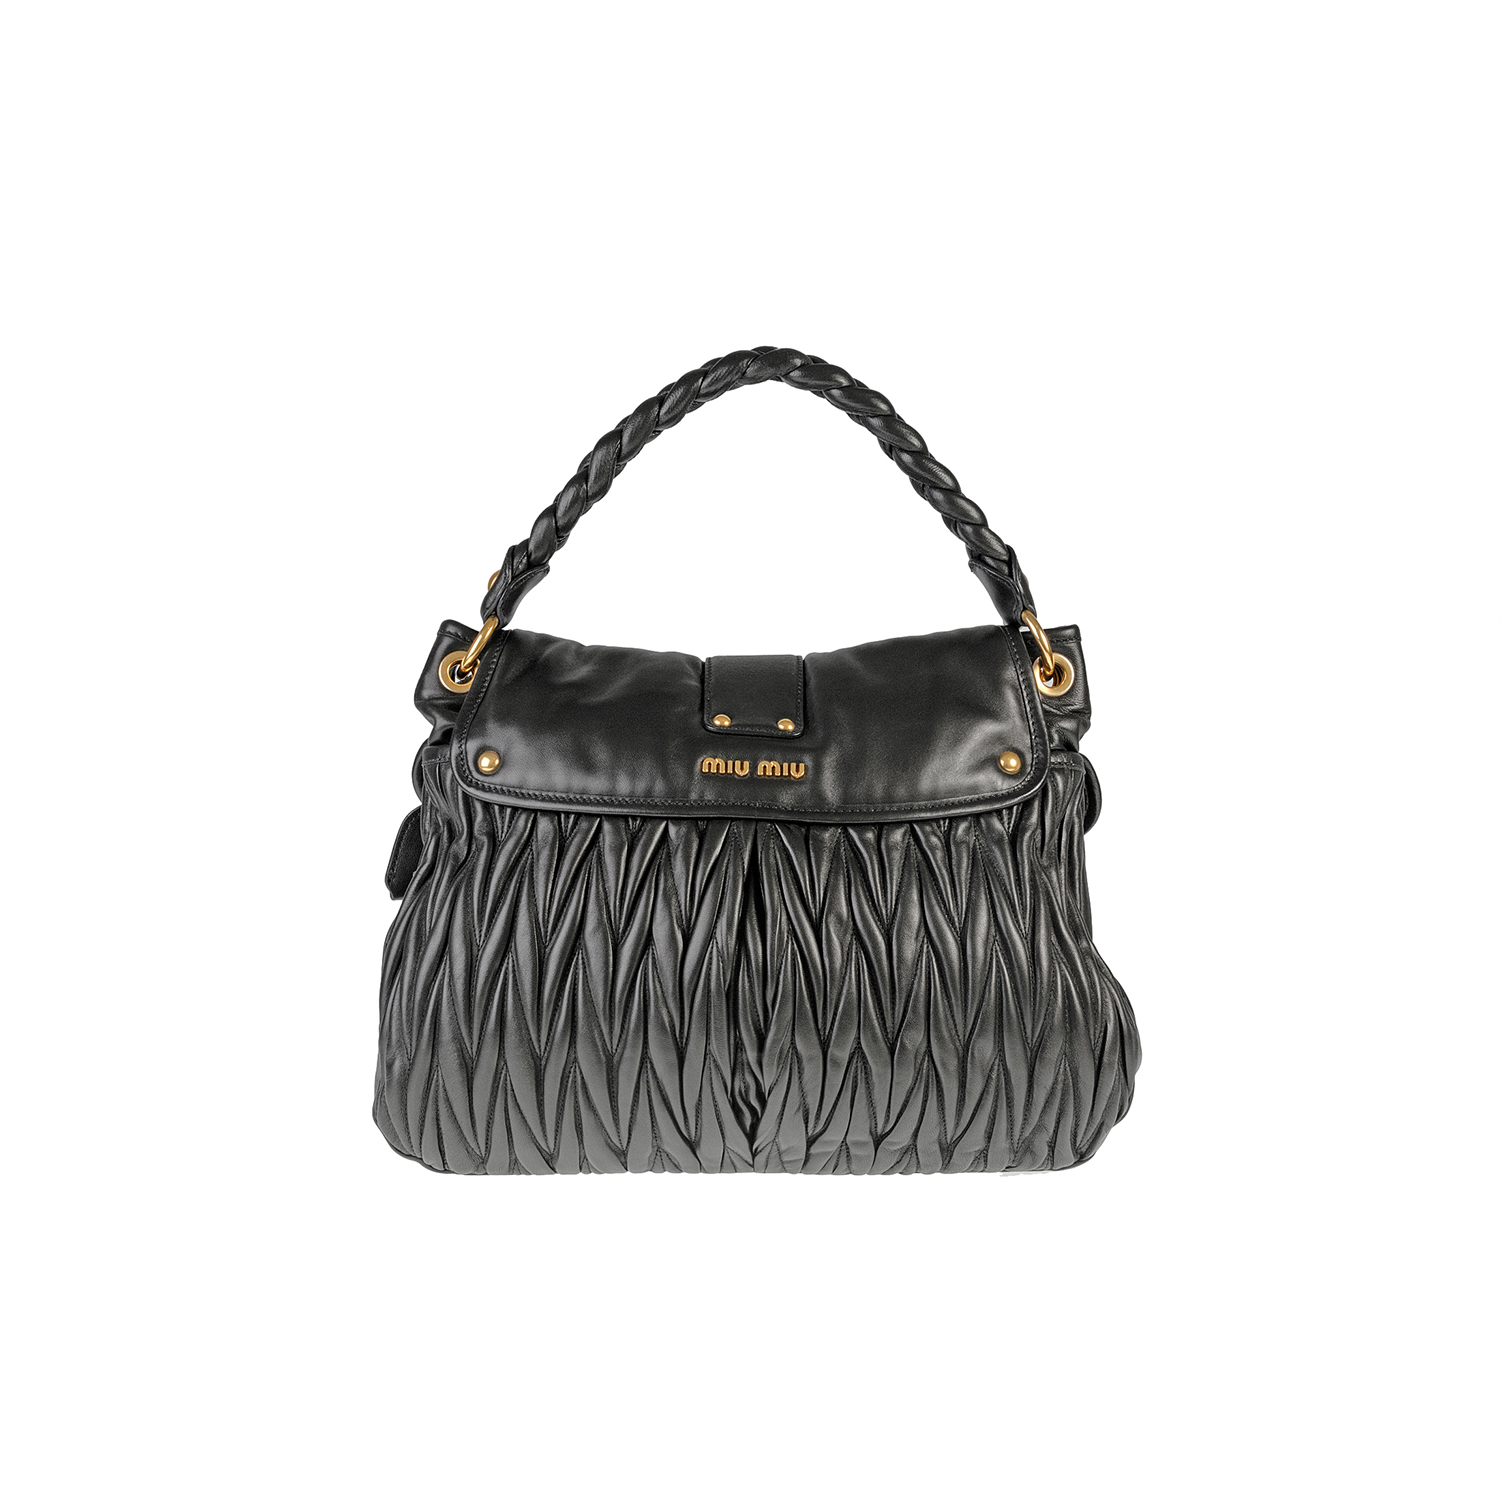 Handbag for rent Miu Miu Coffer Bag